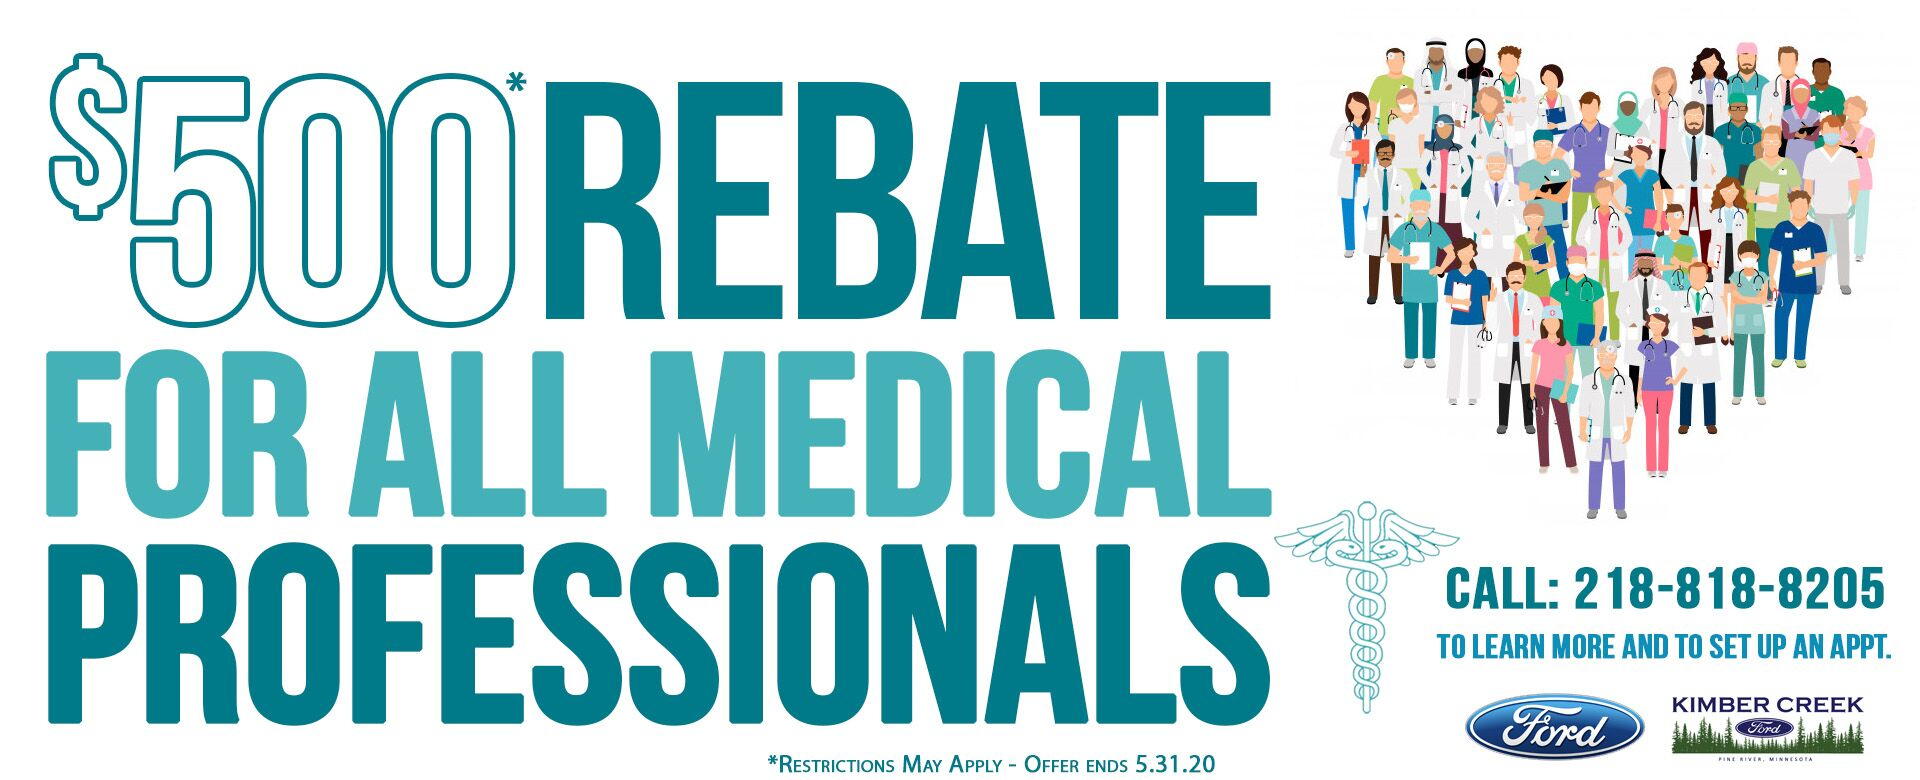 $500 Medical Professional Rebate